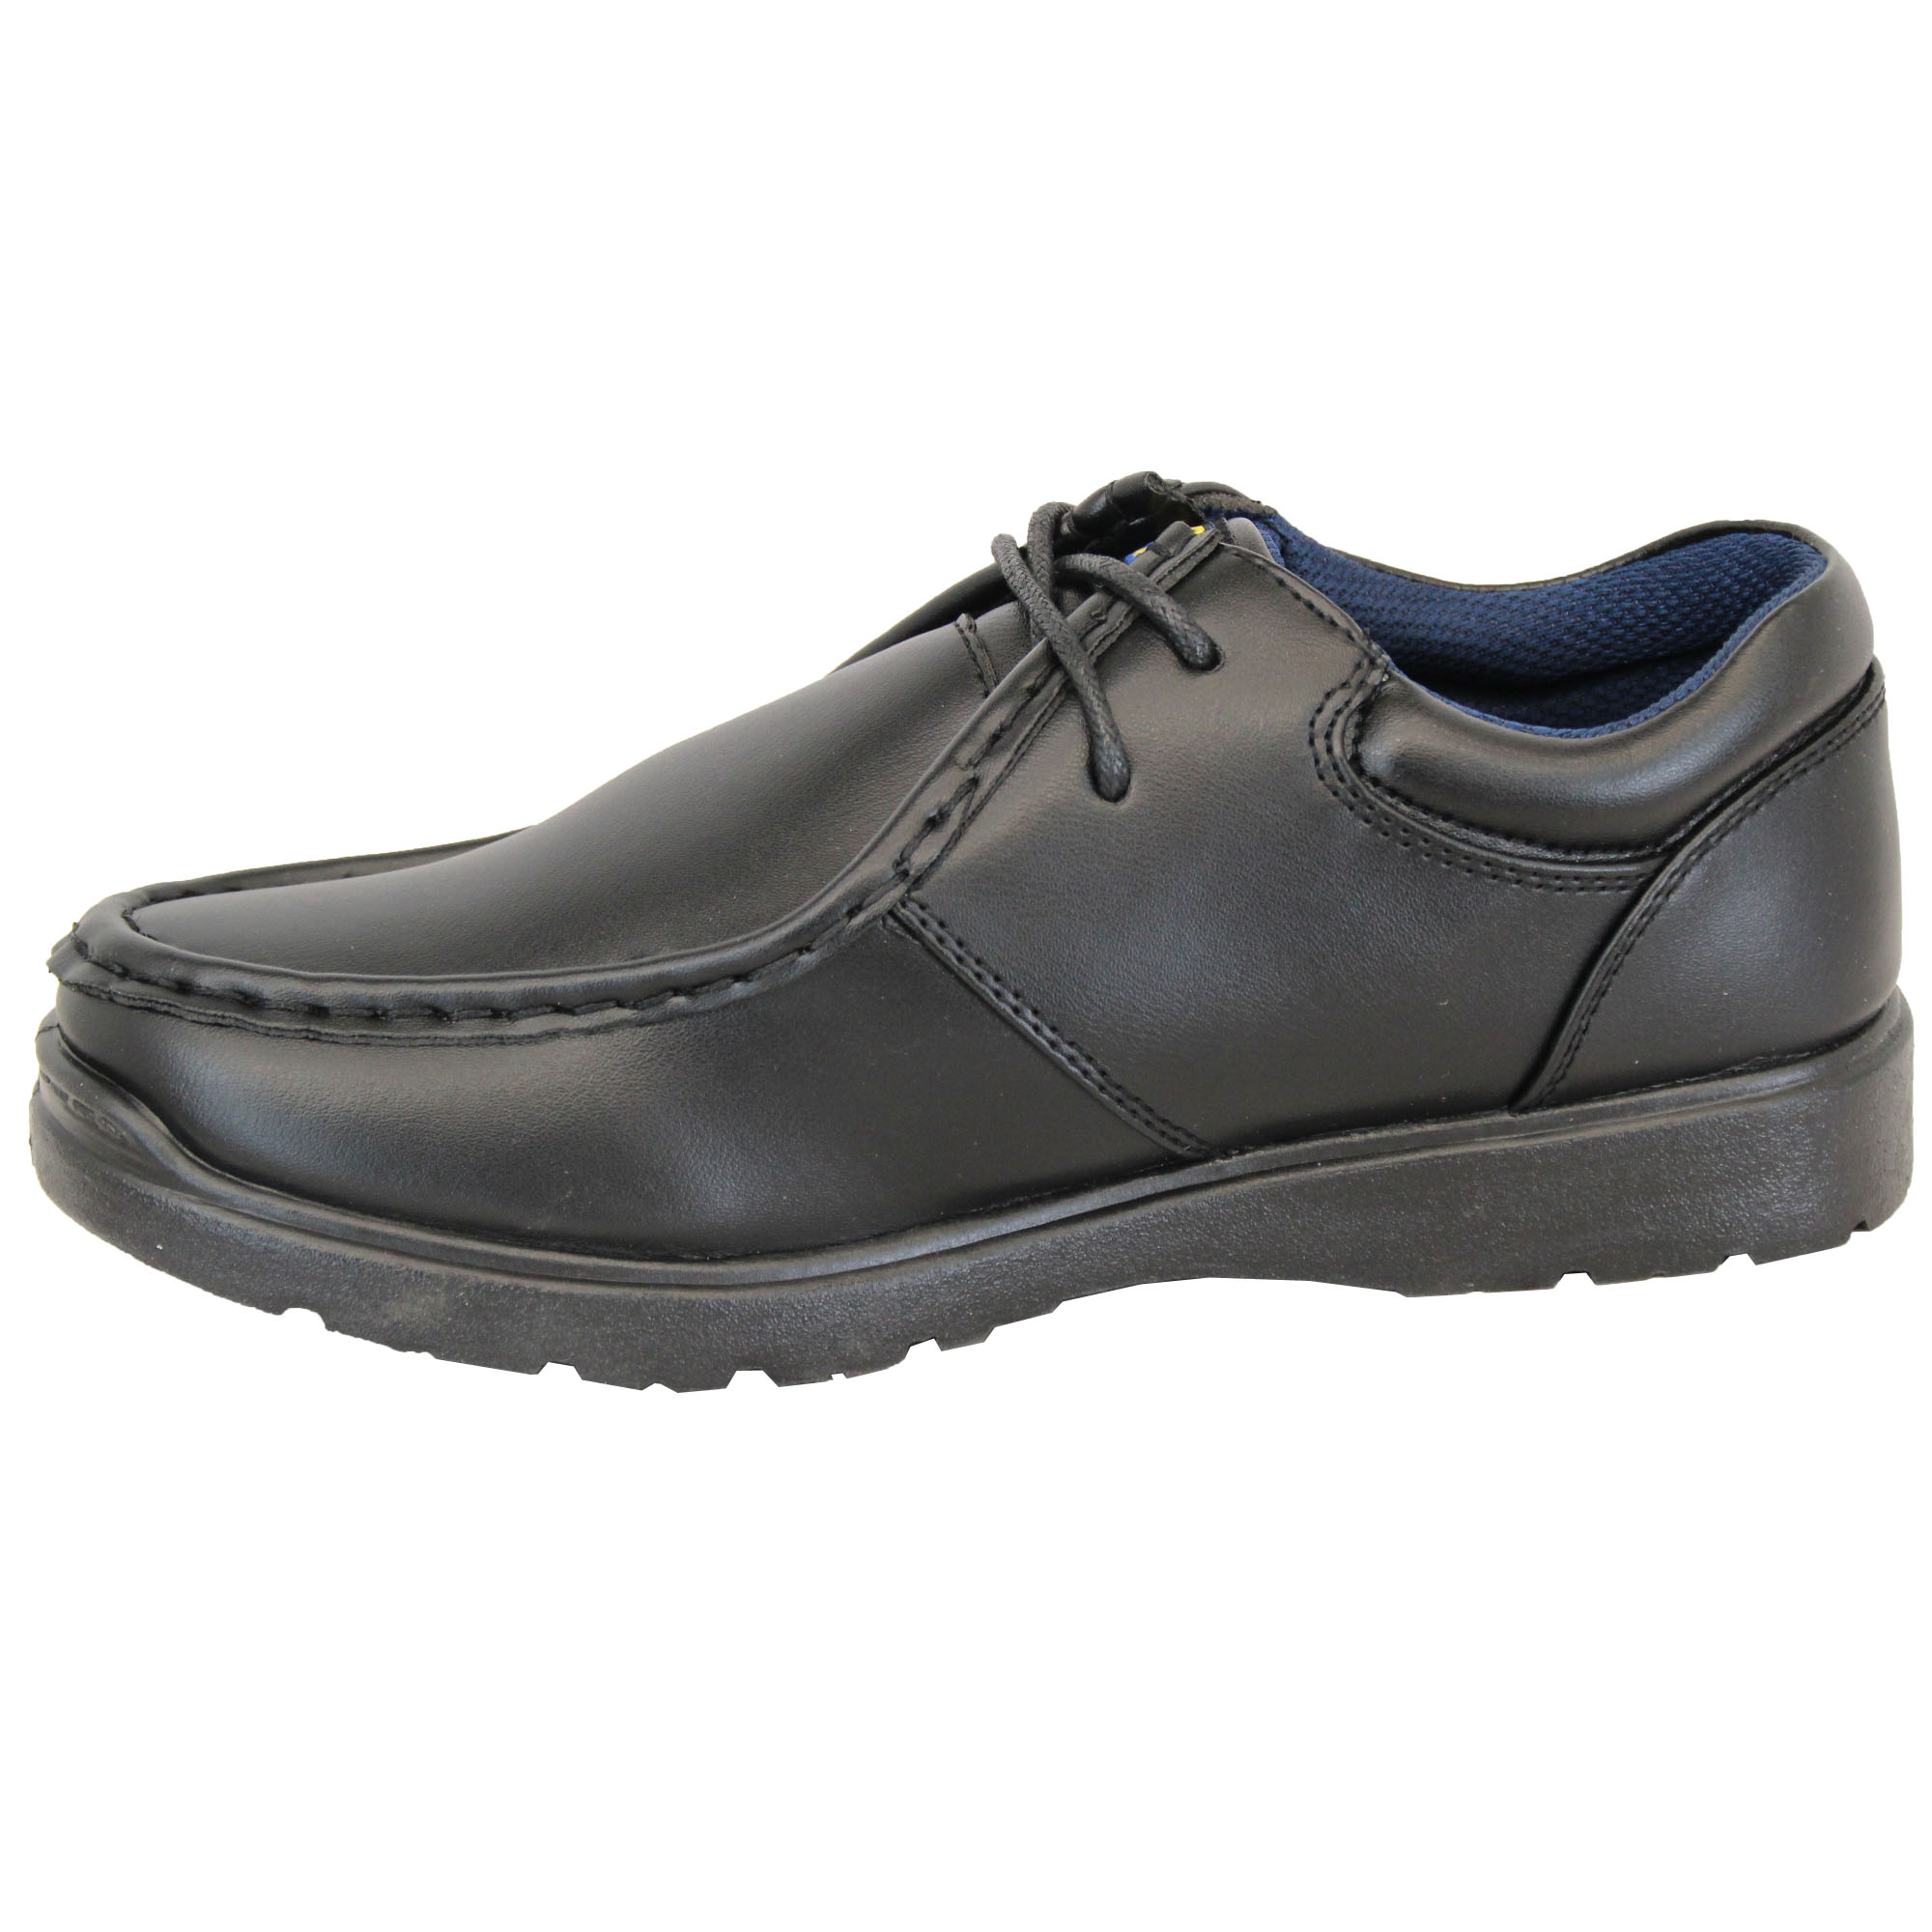 Boys School Shoes Kids Youth US Brass Lace Up Formal Wedding Smart Boots